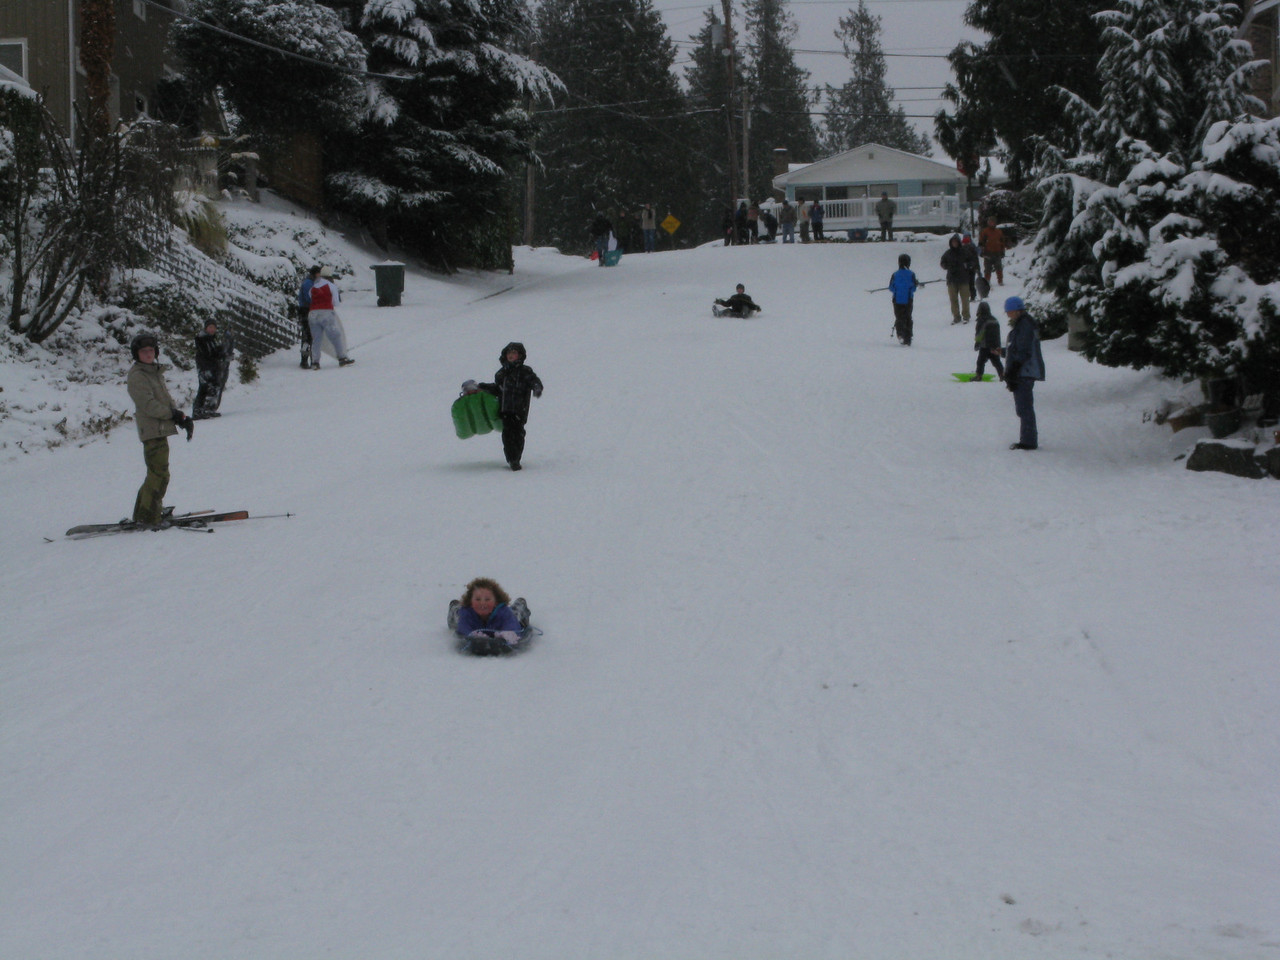 I skiied north on 8th Avenue from our house to Cedar Street.  The steep incline on Cedar makes a fine sledding hill.